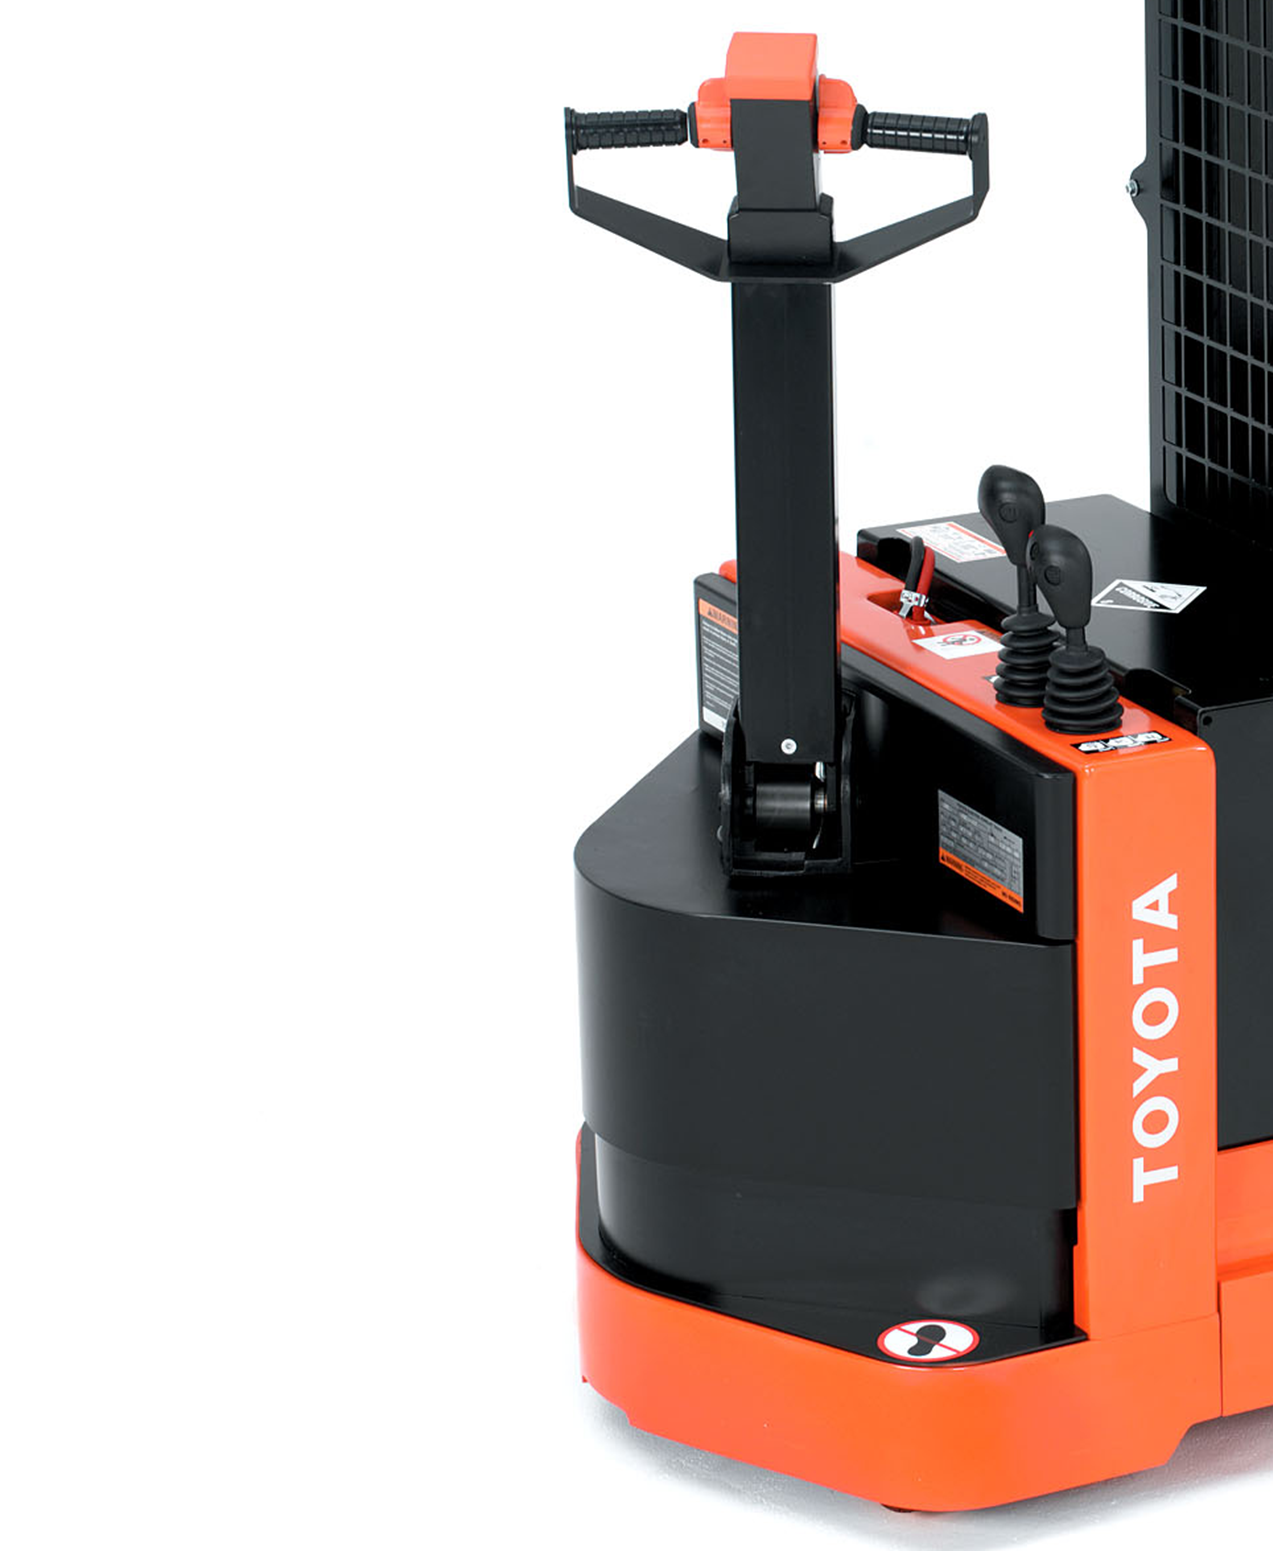 Close-up image of Toyota's Walkie Reach Truck forklift